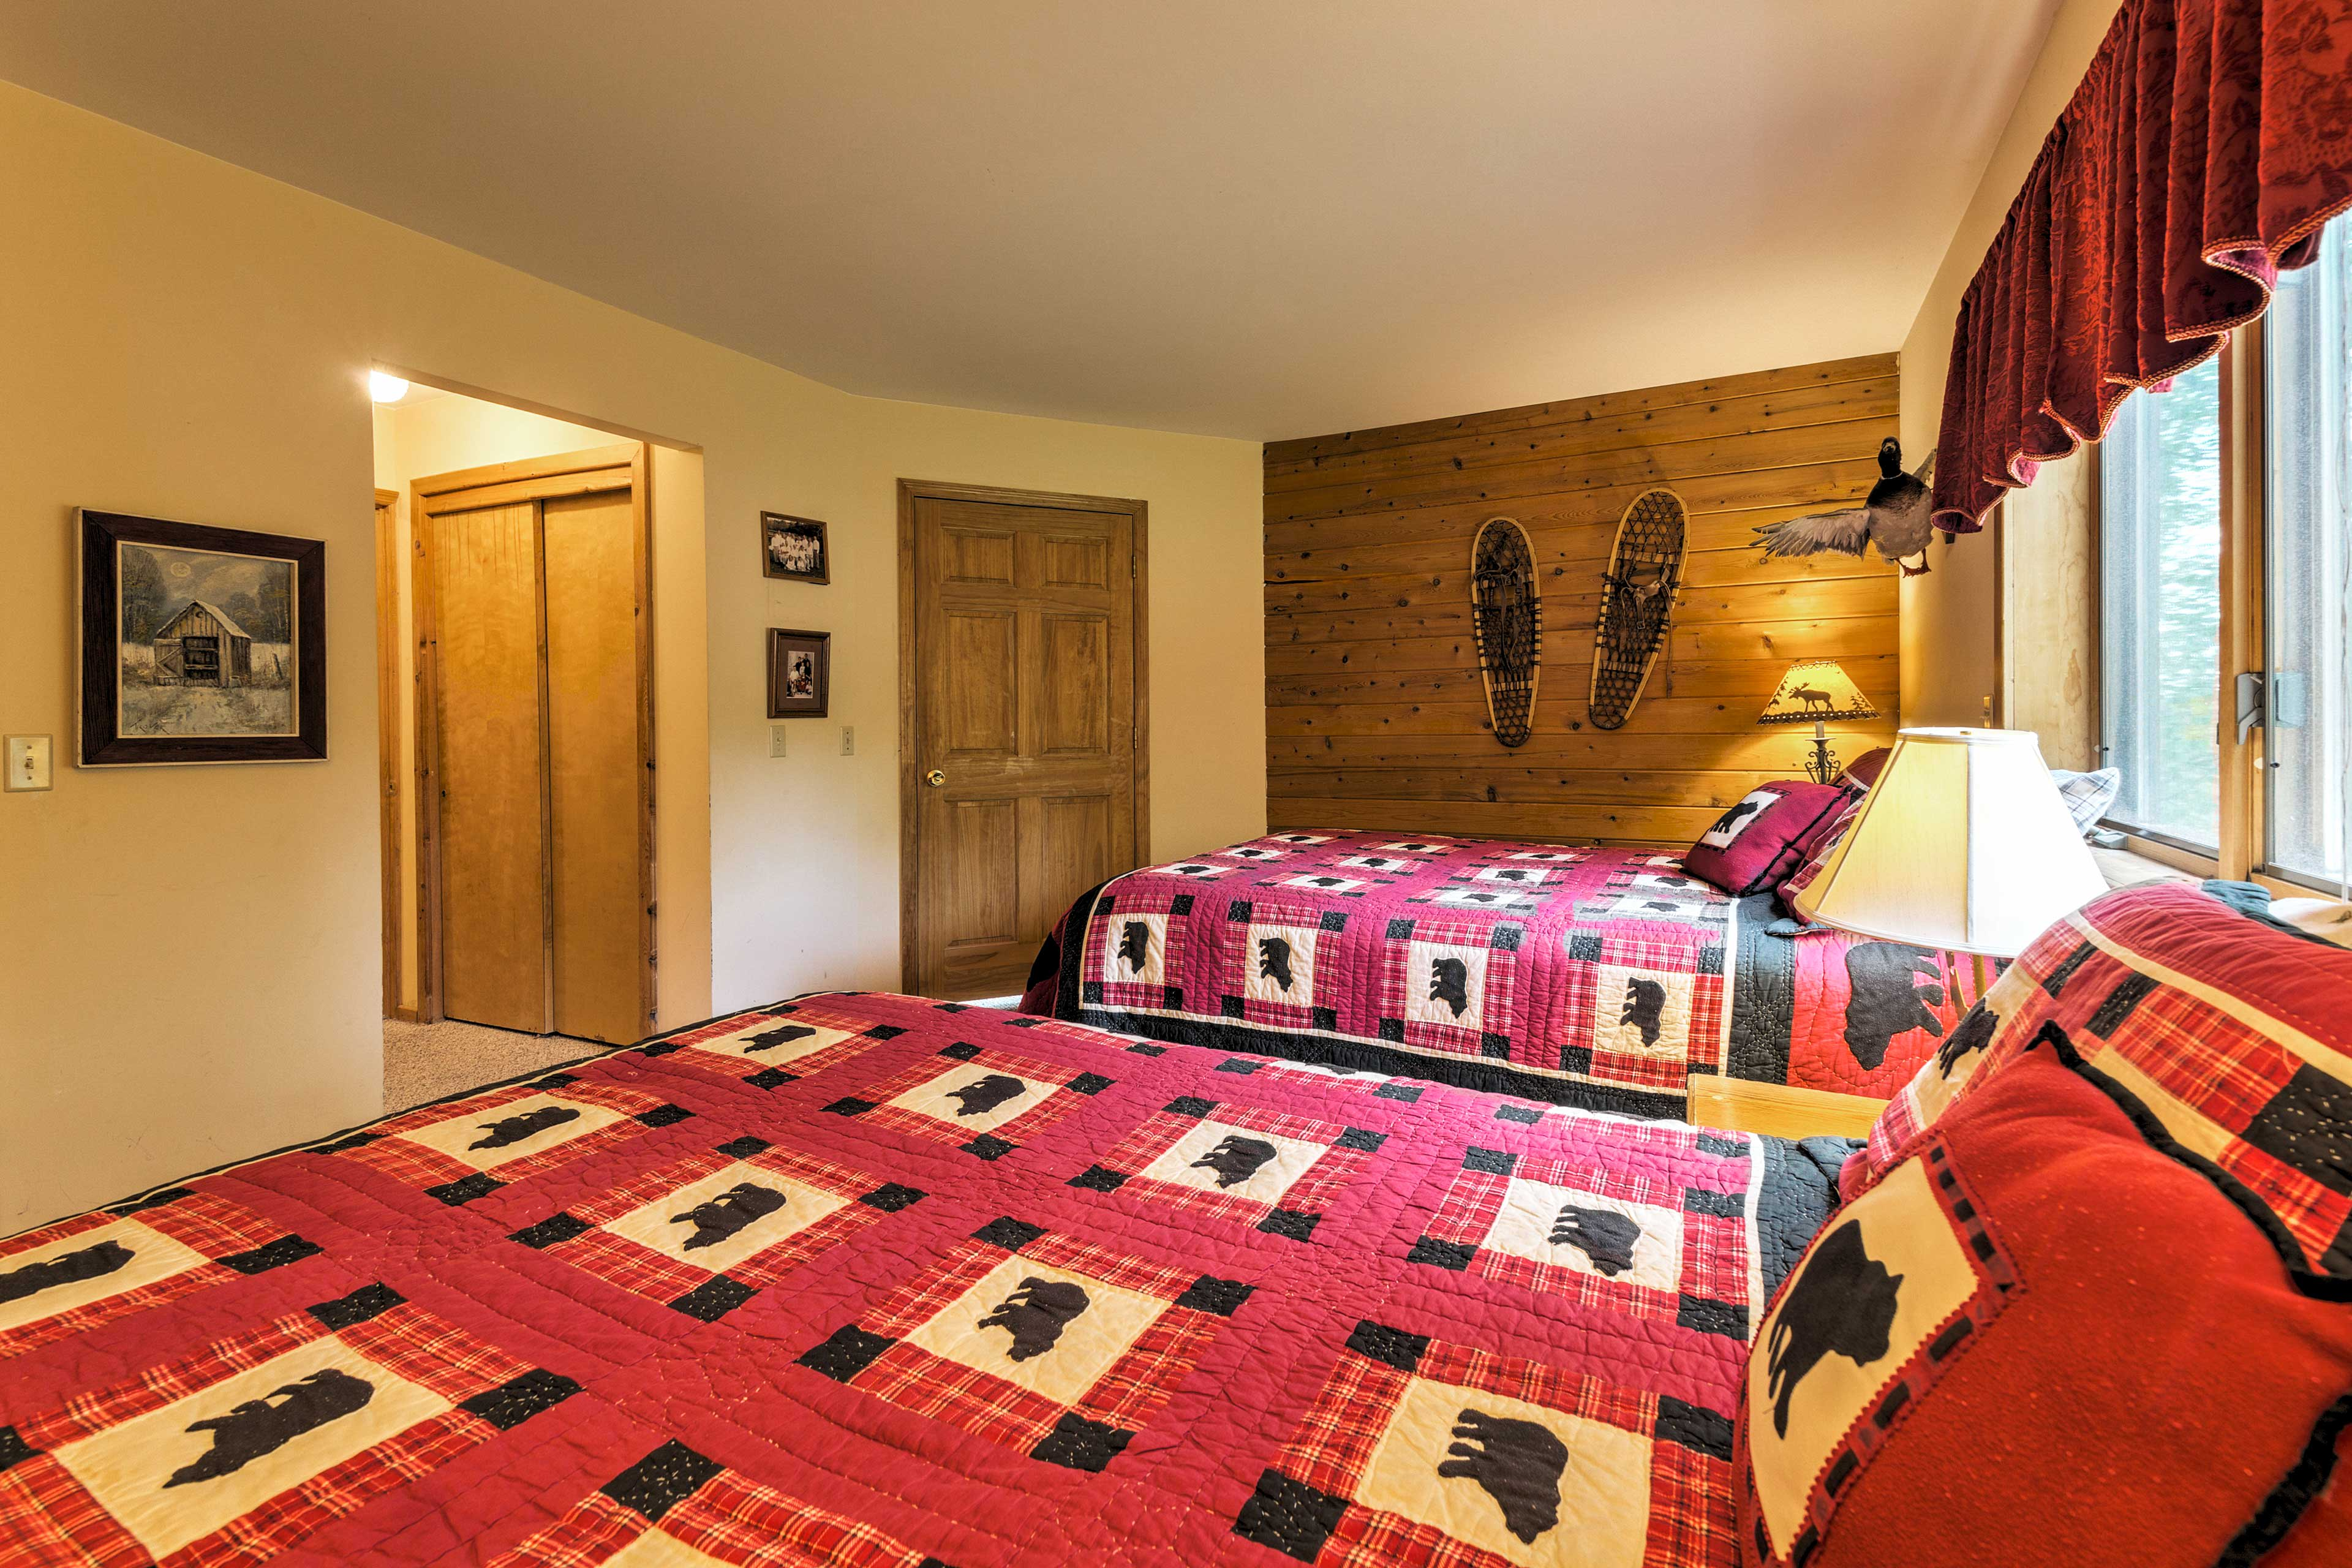 Four guests will sleep soundly in this room!